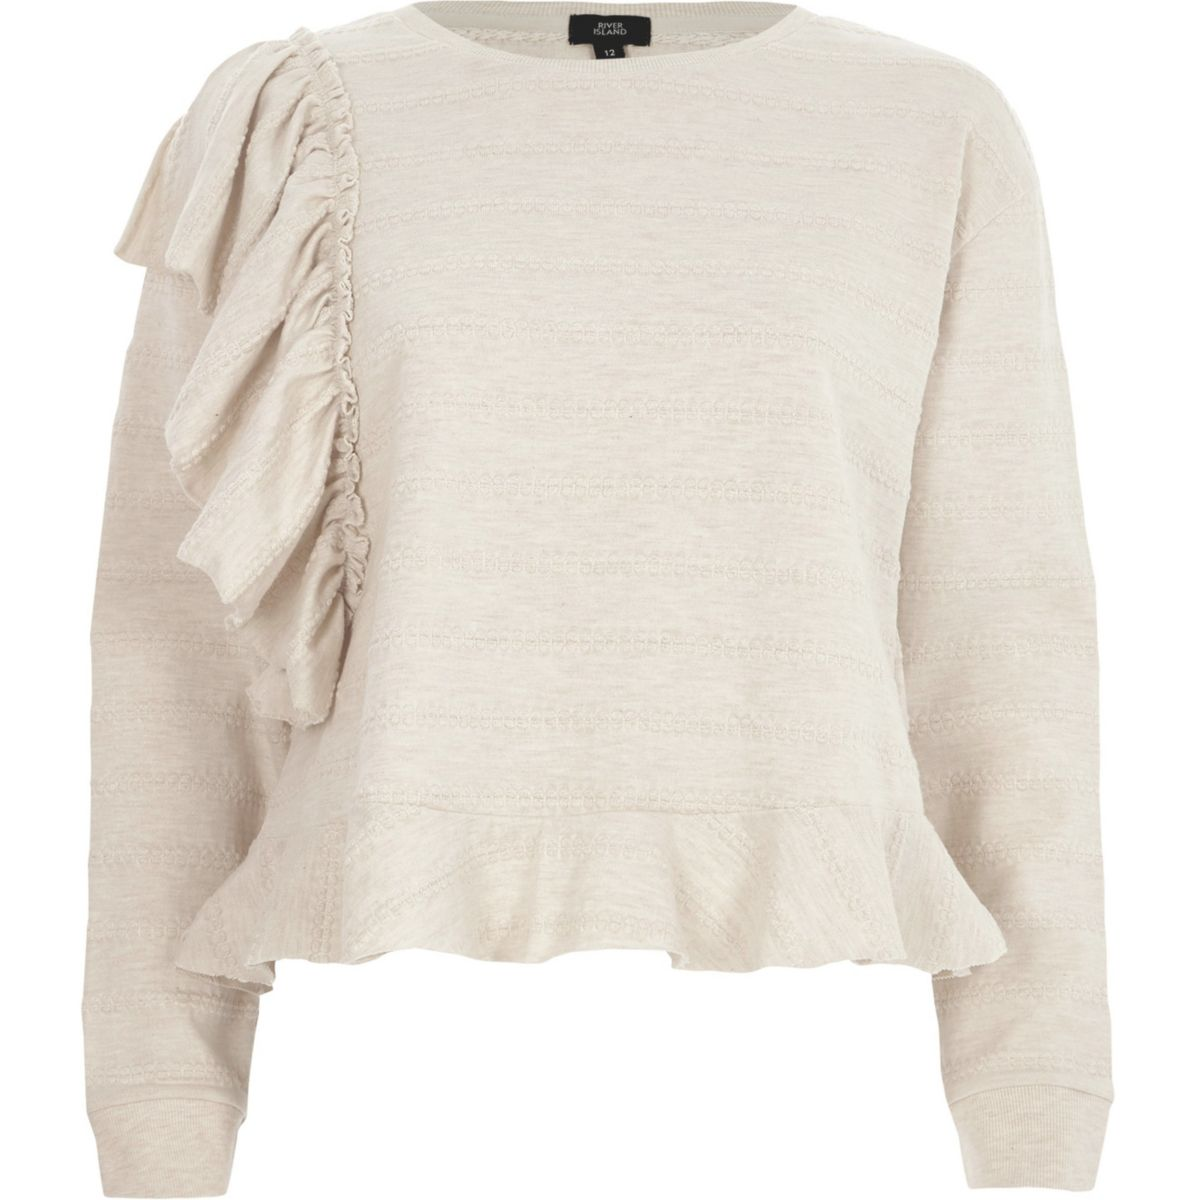 Beige jacquard frill long sleeve top